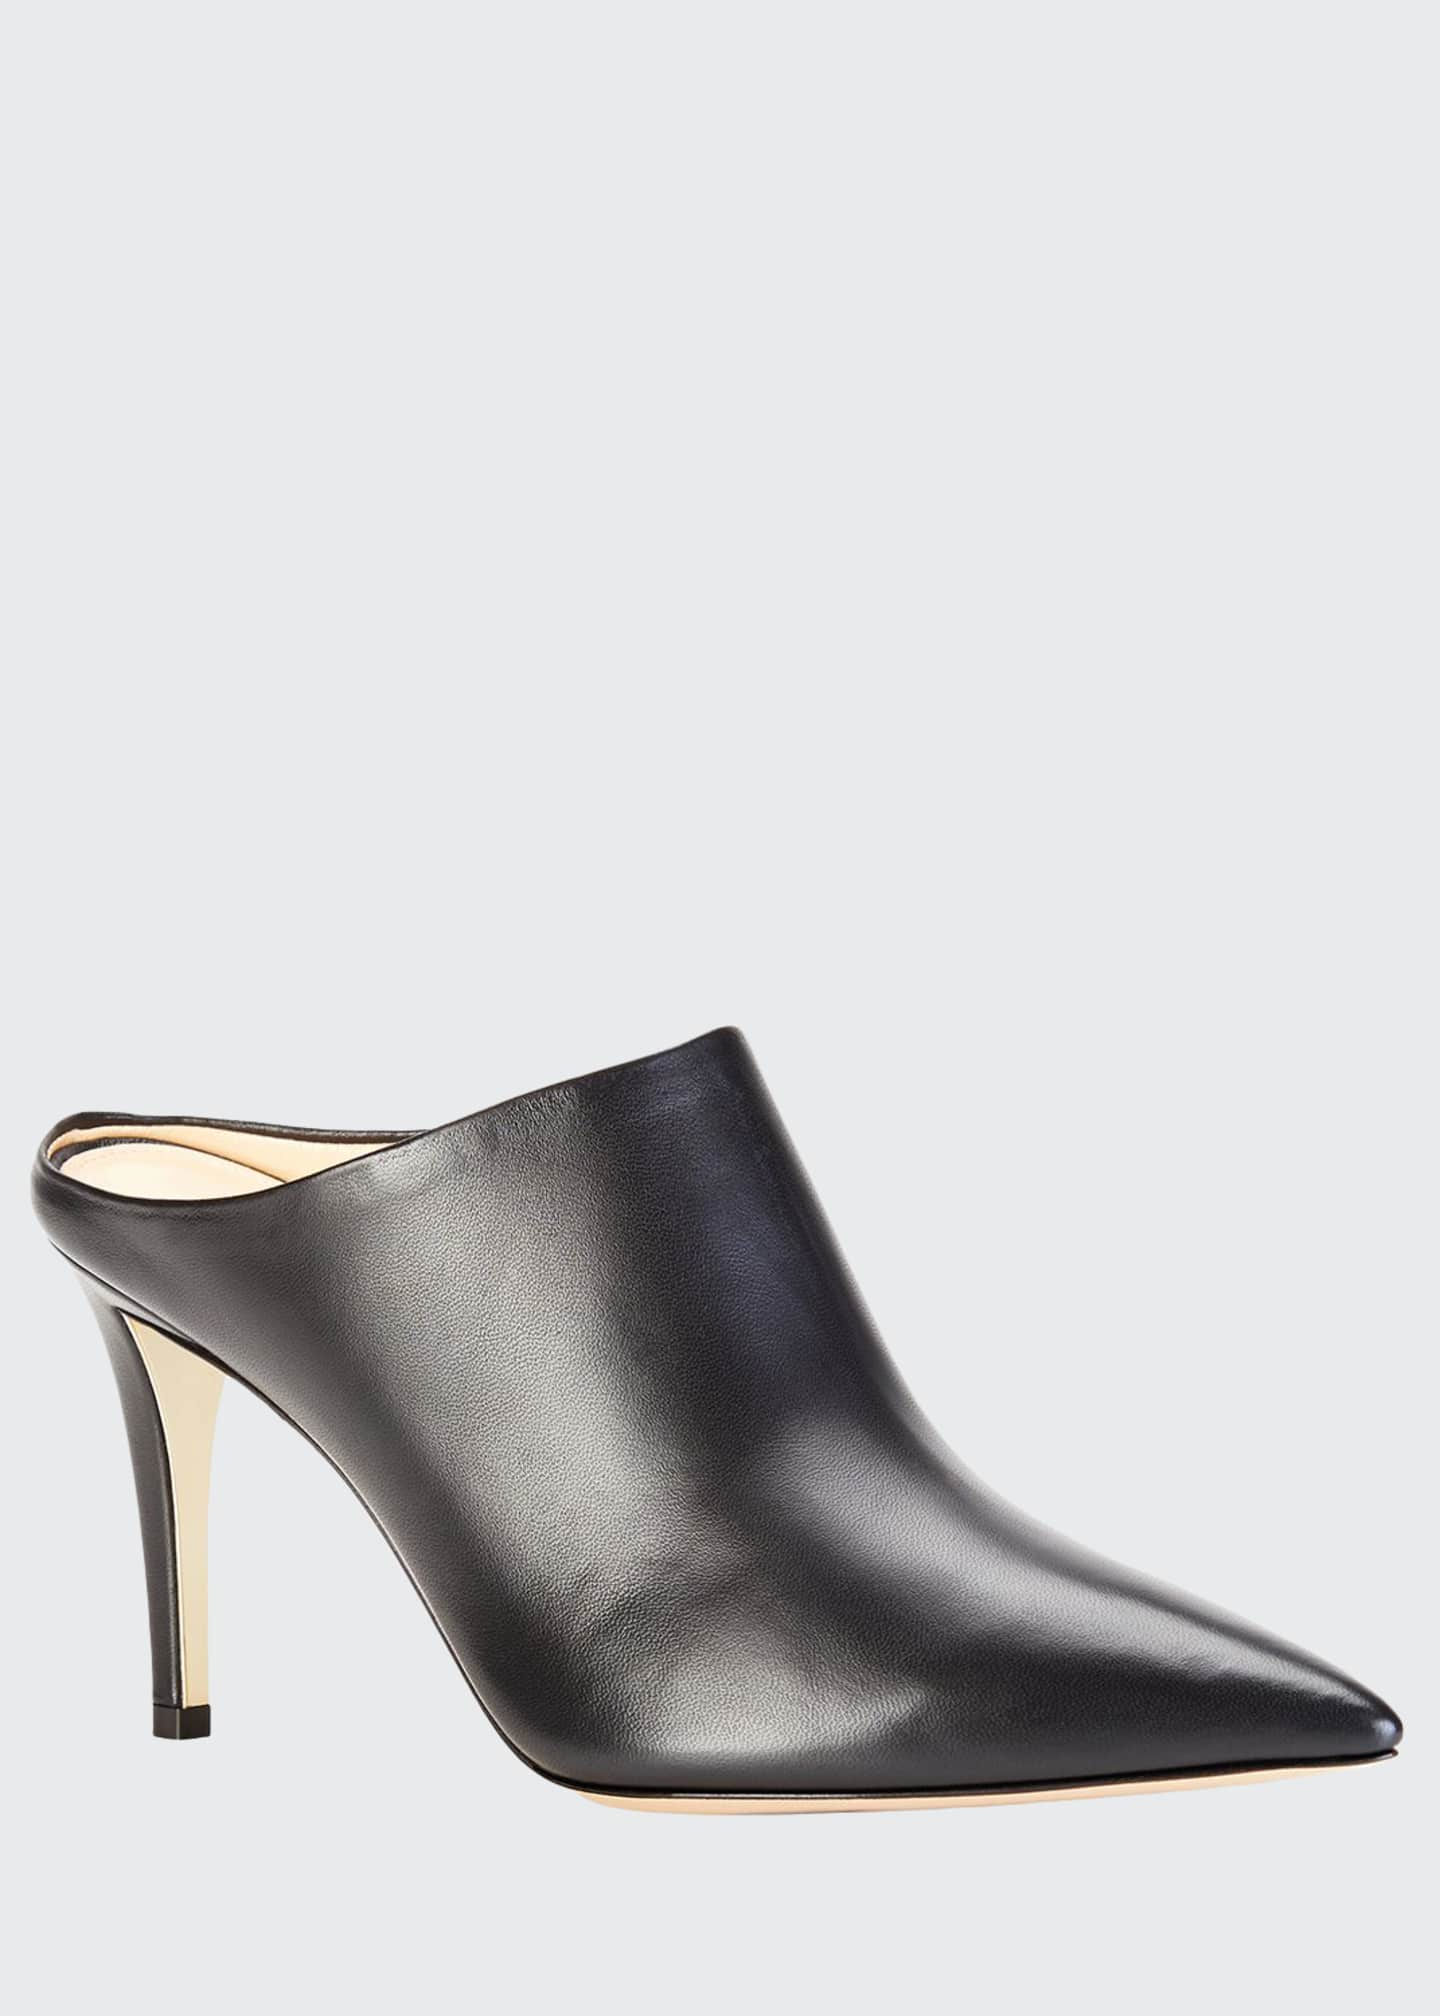 Marion Parke Mona Napa Point-Toe Mules